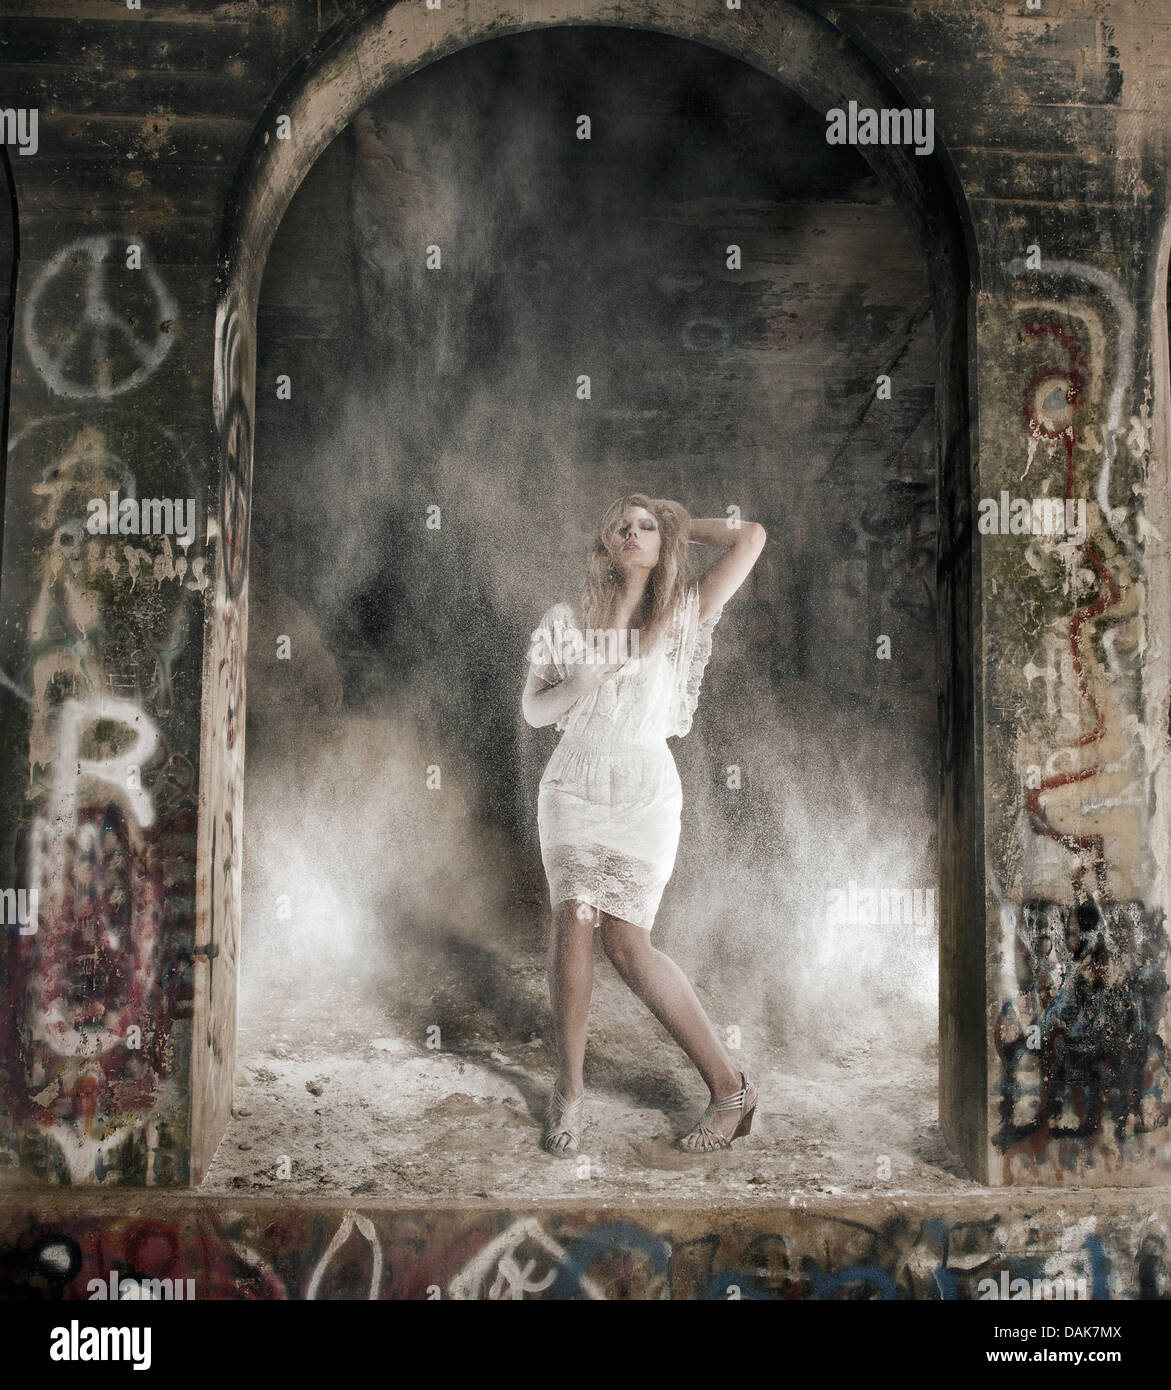 Woman between columns standing in dust cloud - Stock Image